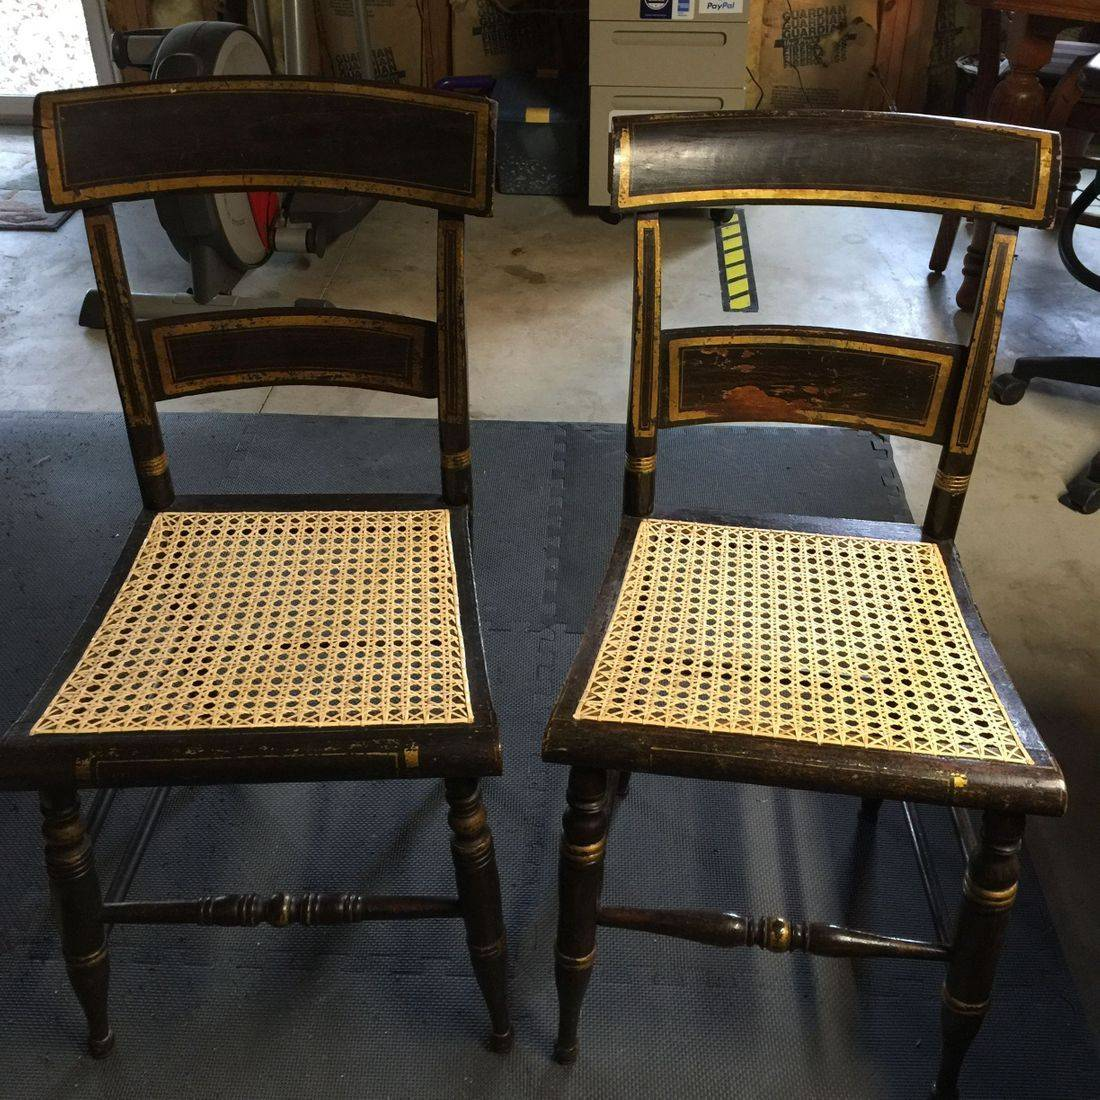 Antique Hitchcock chairs circa 1830 done by Hank's Cane  & Rush Restoration